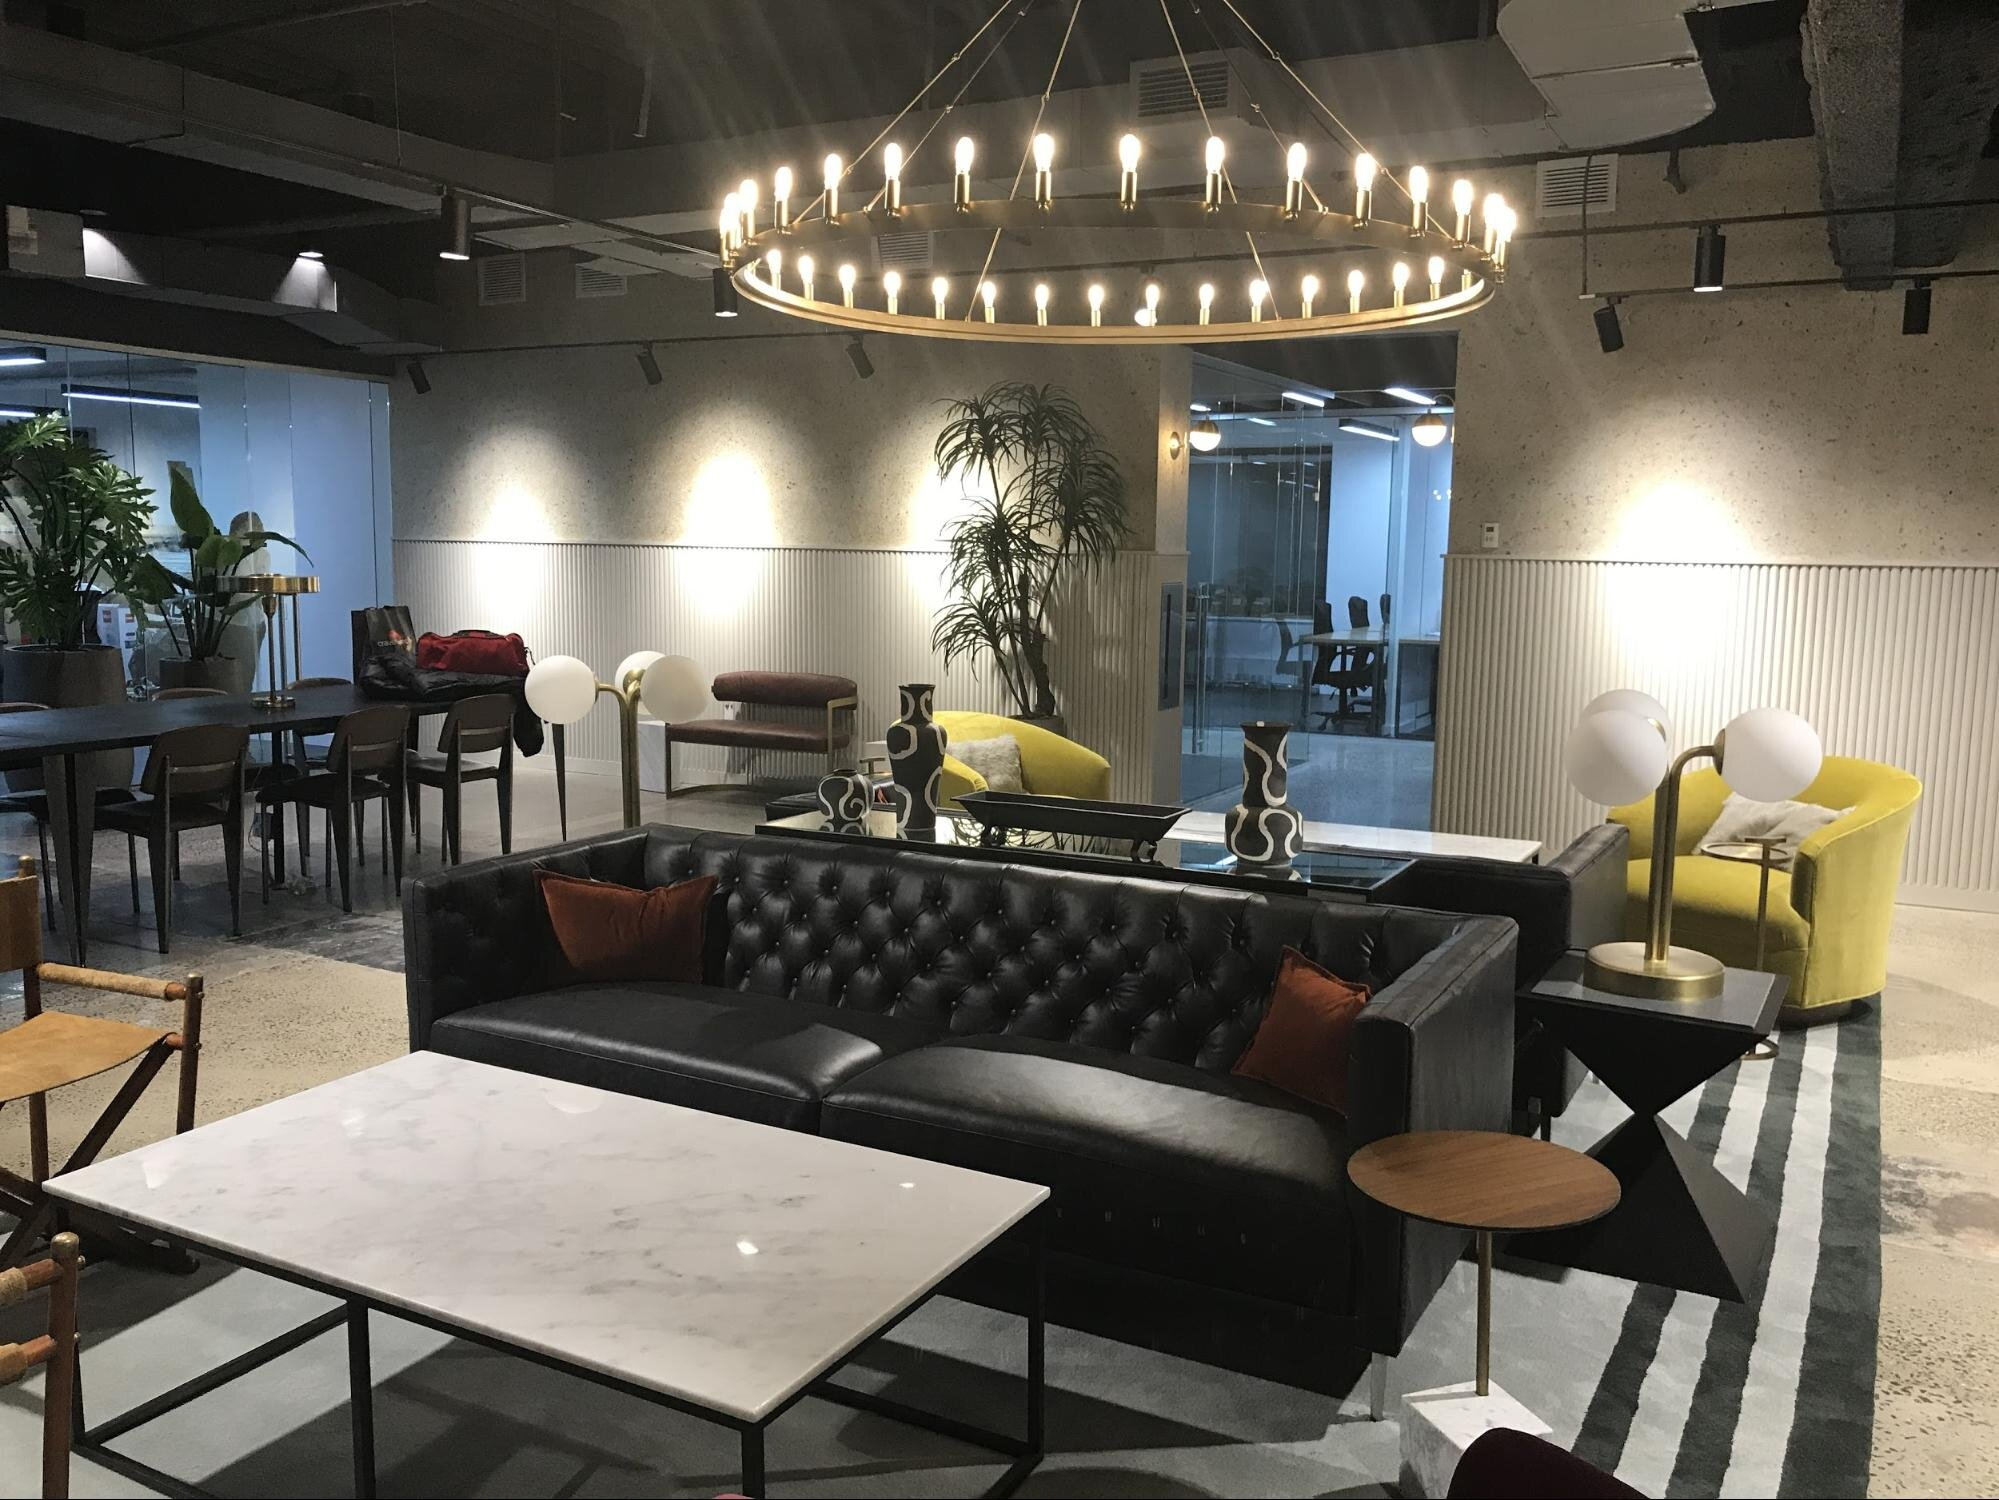 office layout and decor of coworking space